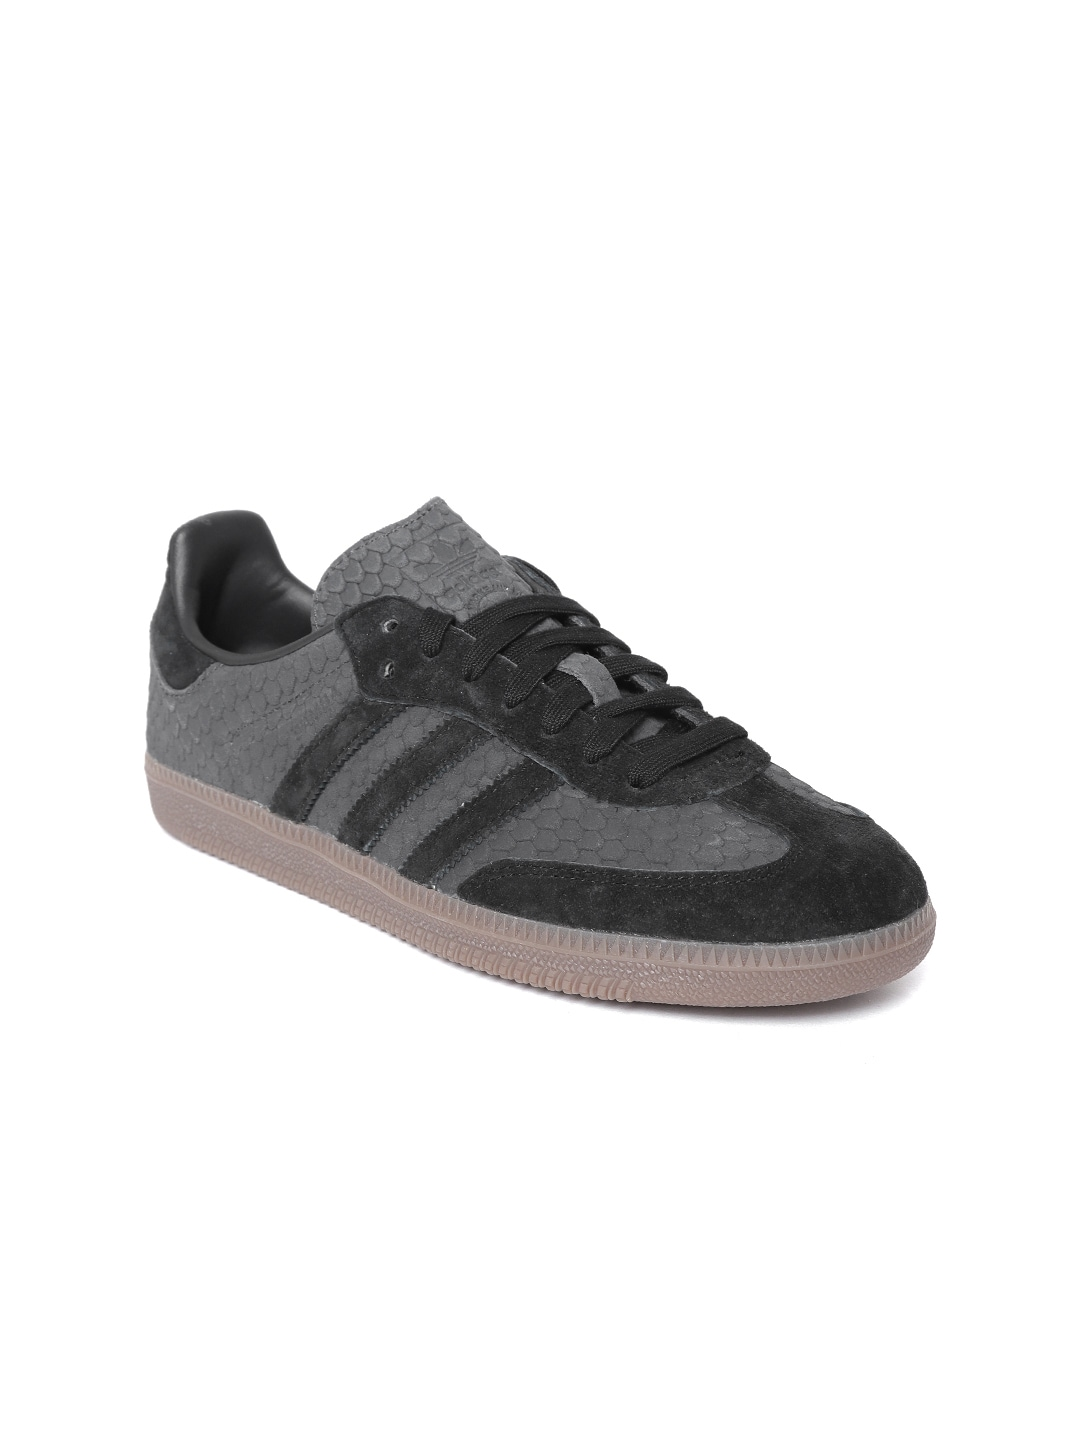 Buy India Adidas Women In Online Shoes Women's For erdxBoCW